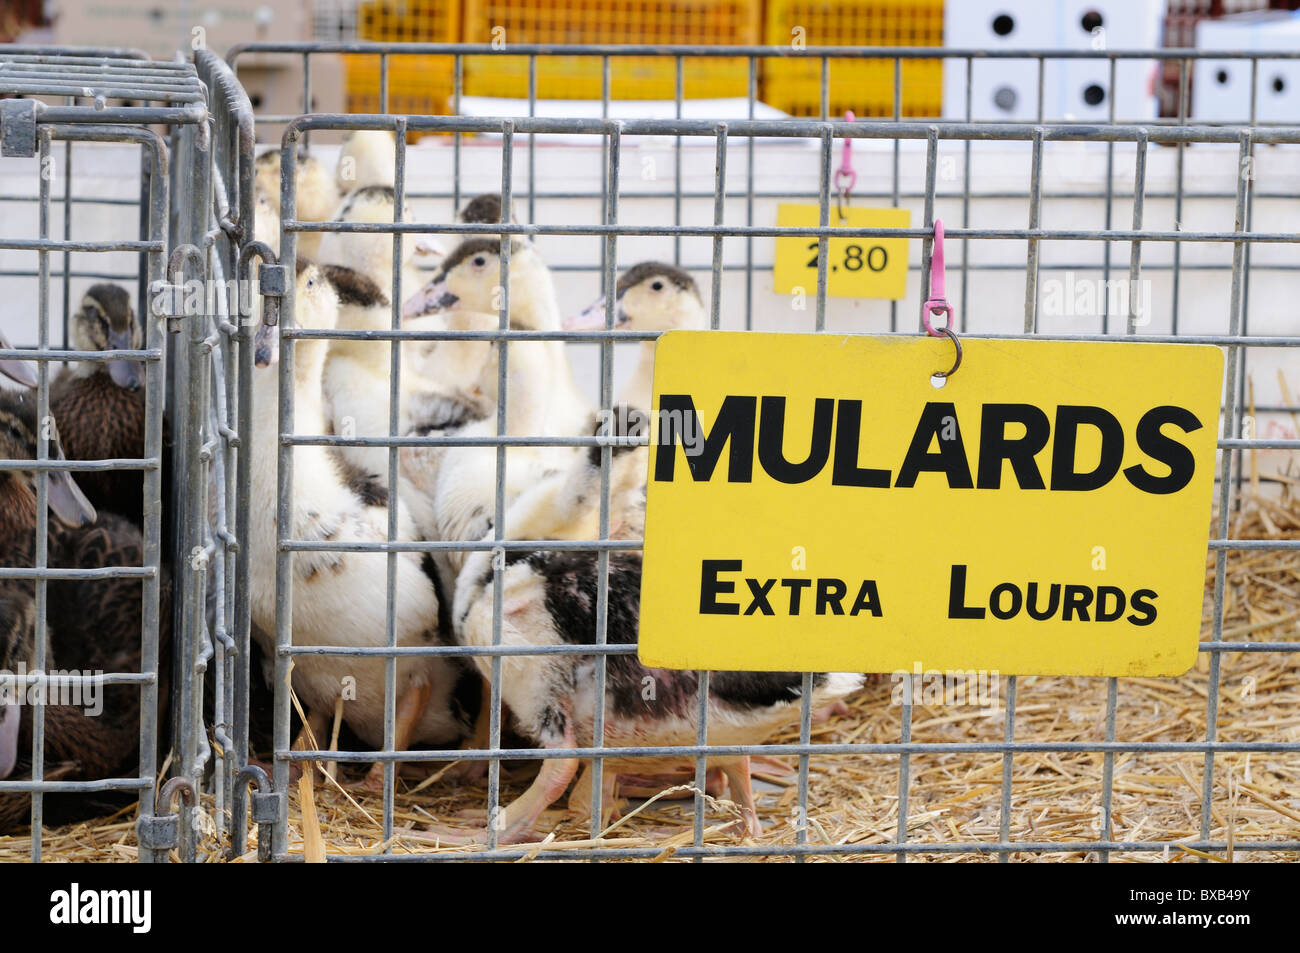 Stock photo of Poultry for sale on market stalls at the Les Herolles farmers market in the Limousin region of France. - Stock Image